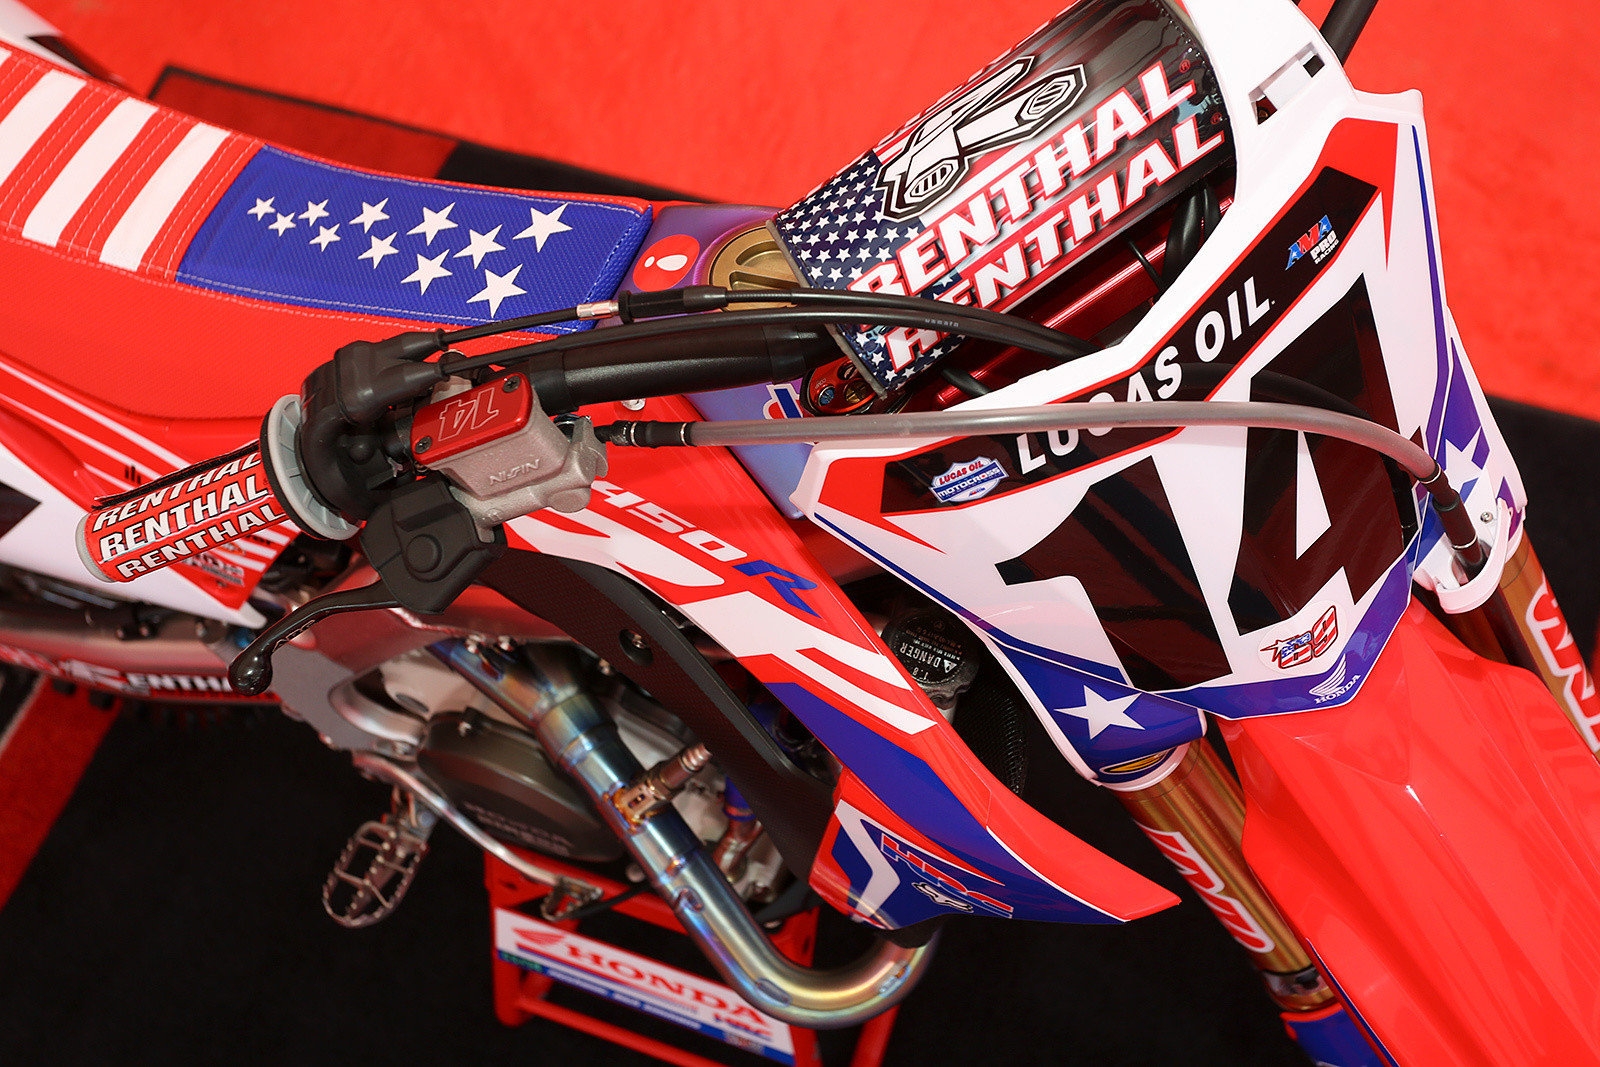 Here's a top view of Cole Seely's bike.